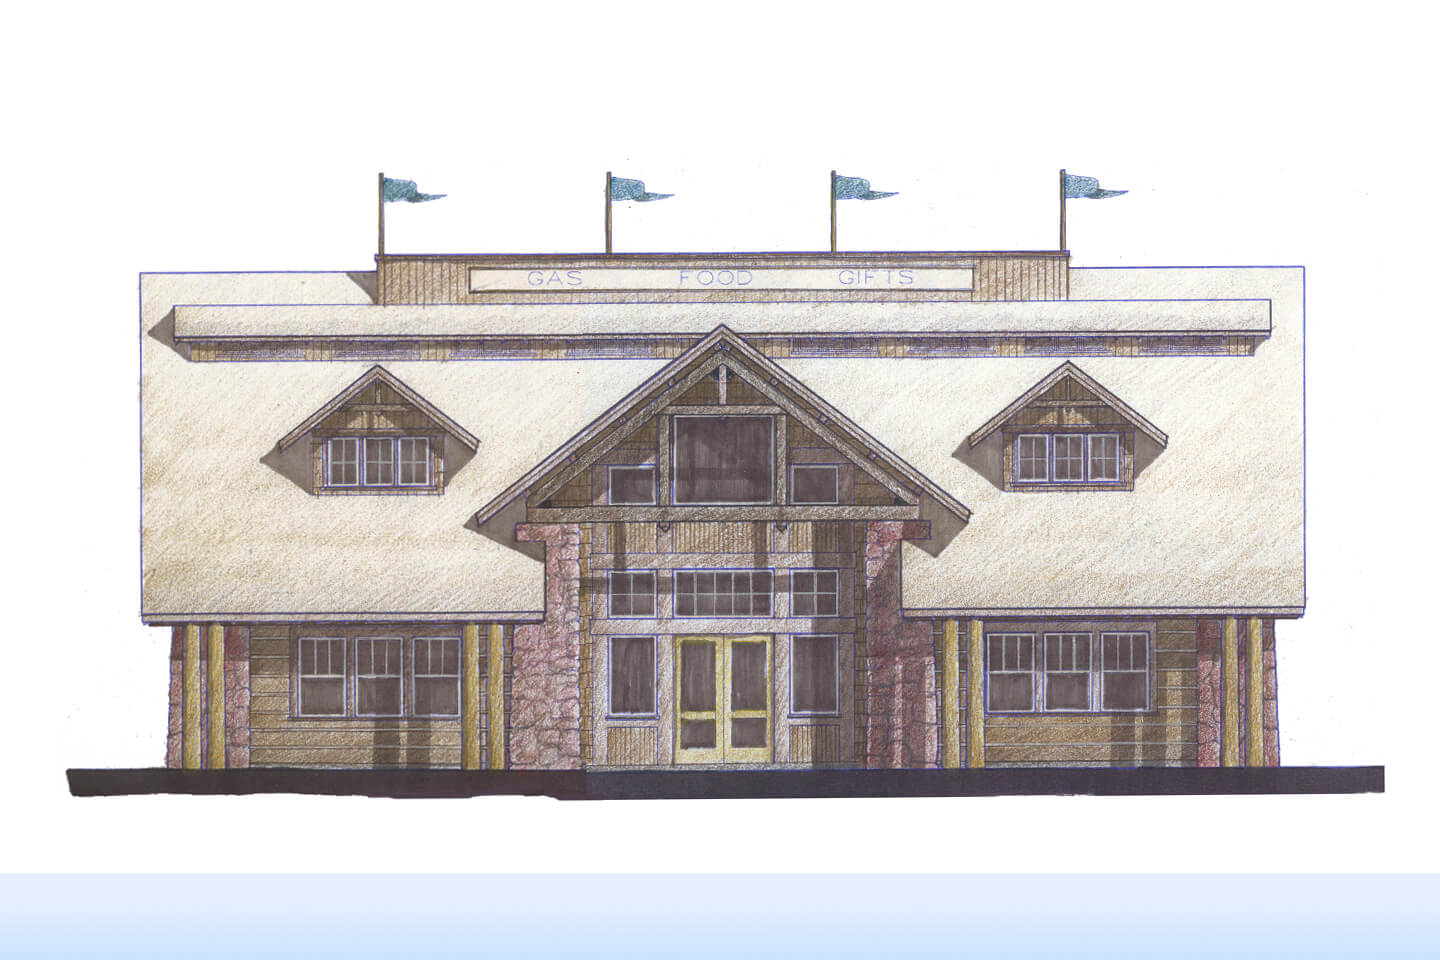 Color hand rendering of the north elevation